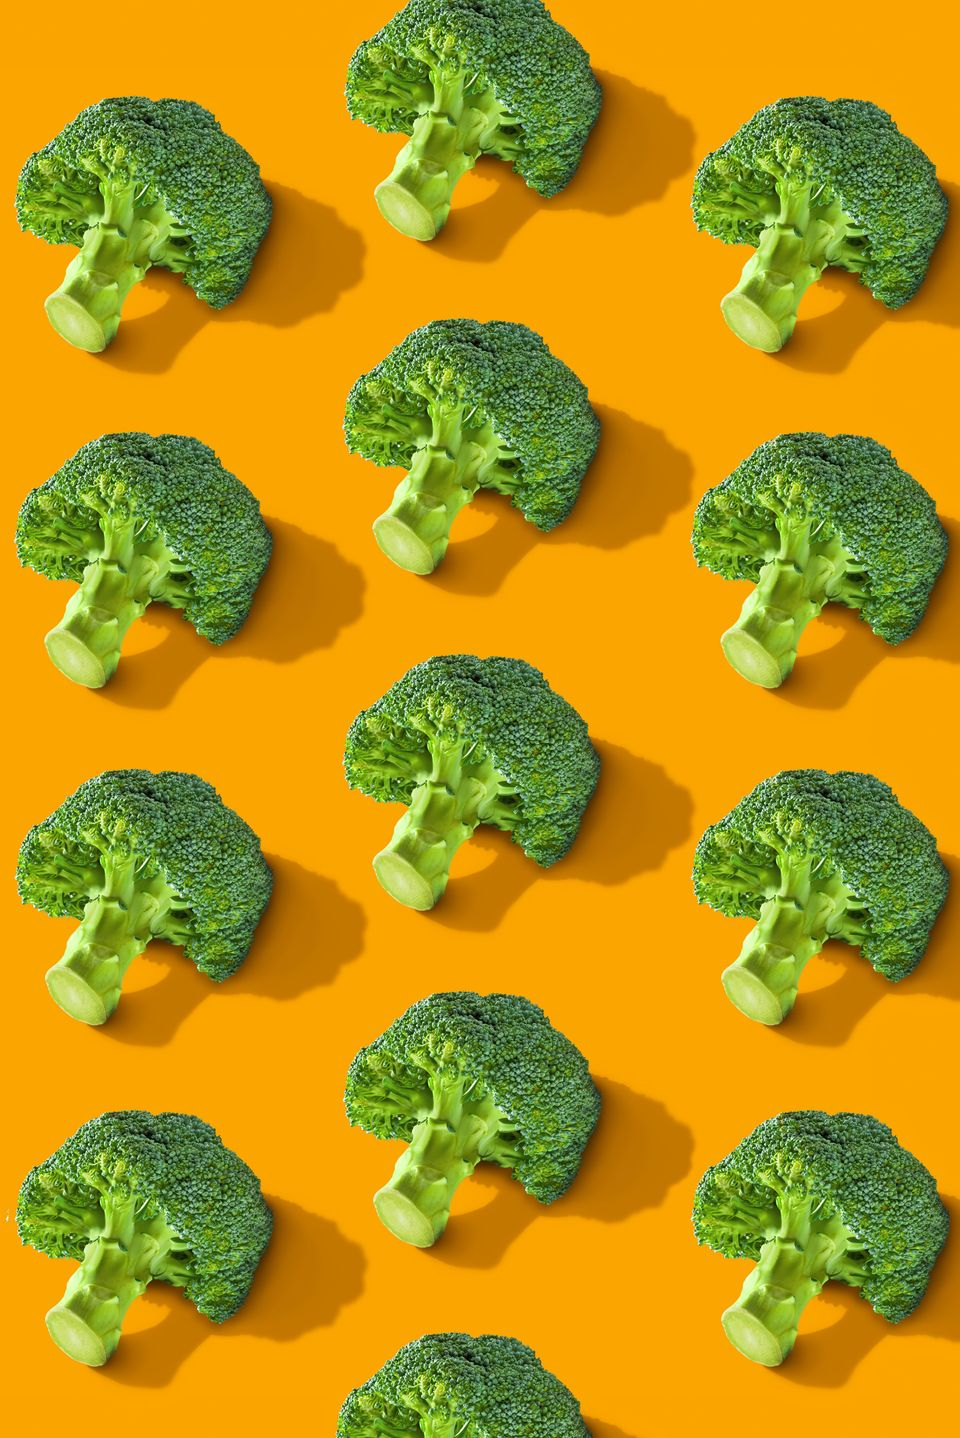 Colorful vegetables pattern of fresh hot broccolis on color background. From top view